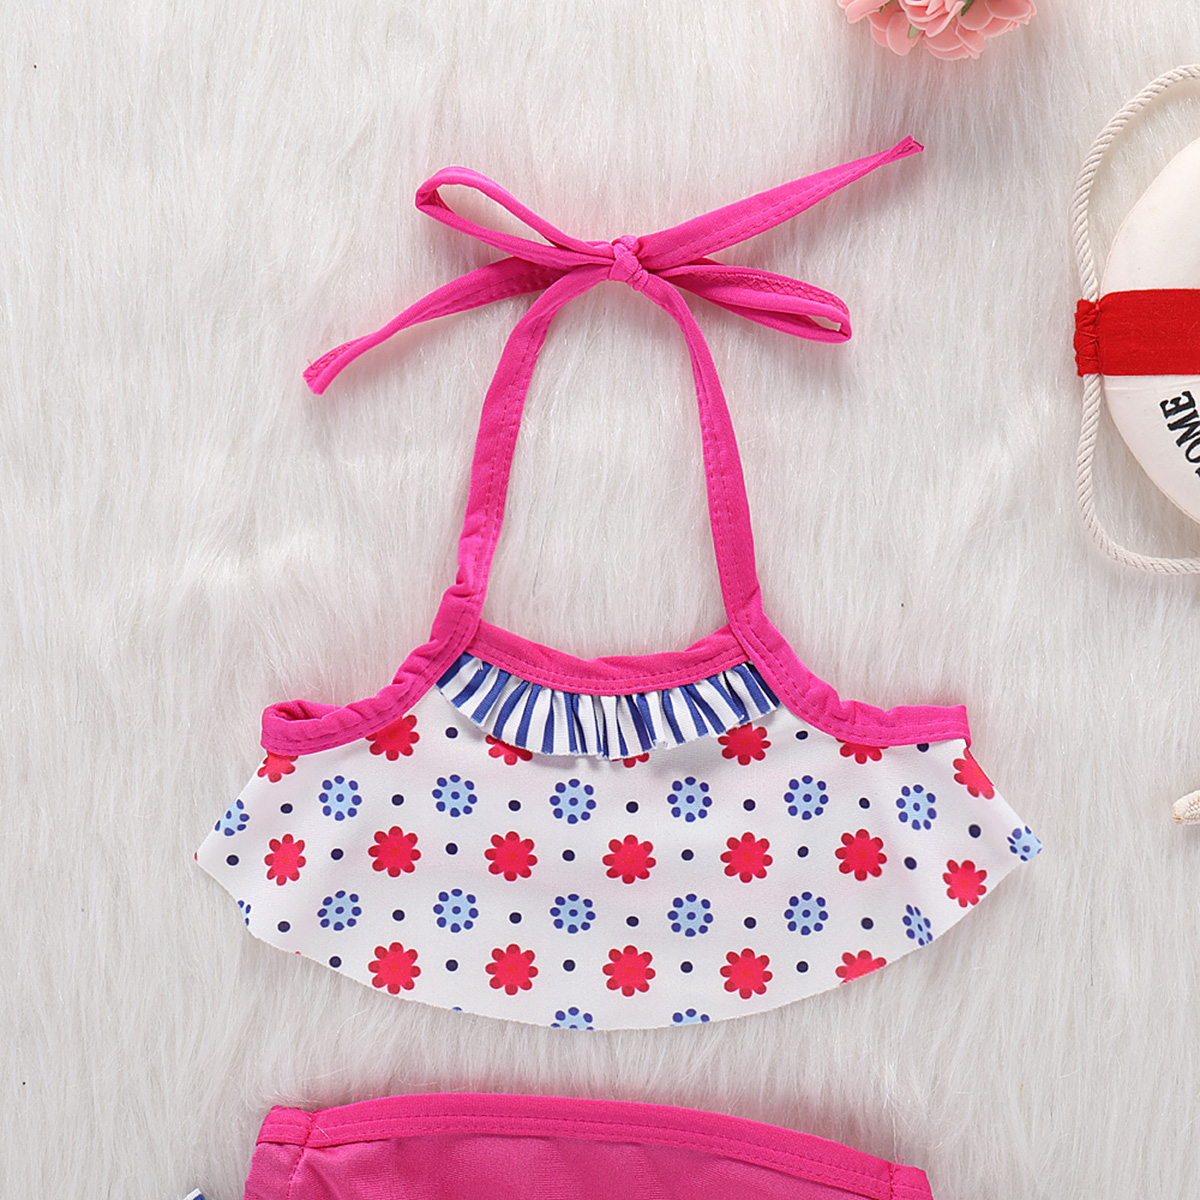 2019 New Baby Girls Two pieces Set Little Girl 2PCS Ruffle Halter Swimwear Bathing Suit Swimsuit Sets Kids Clothes in Clothing Sets from Mother Kids